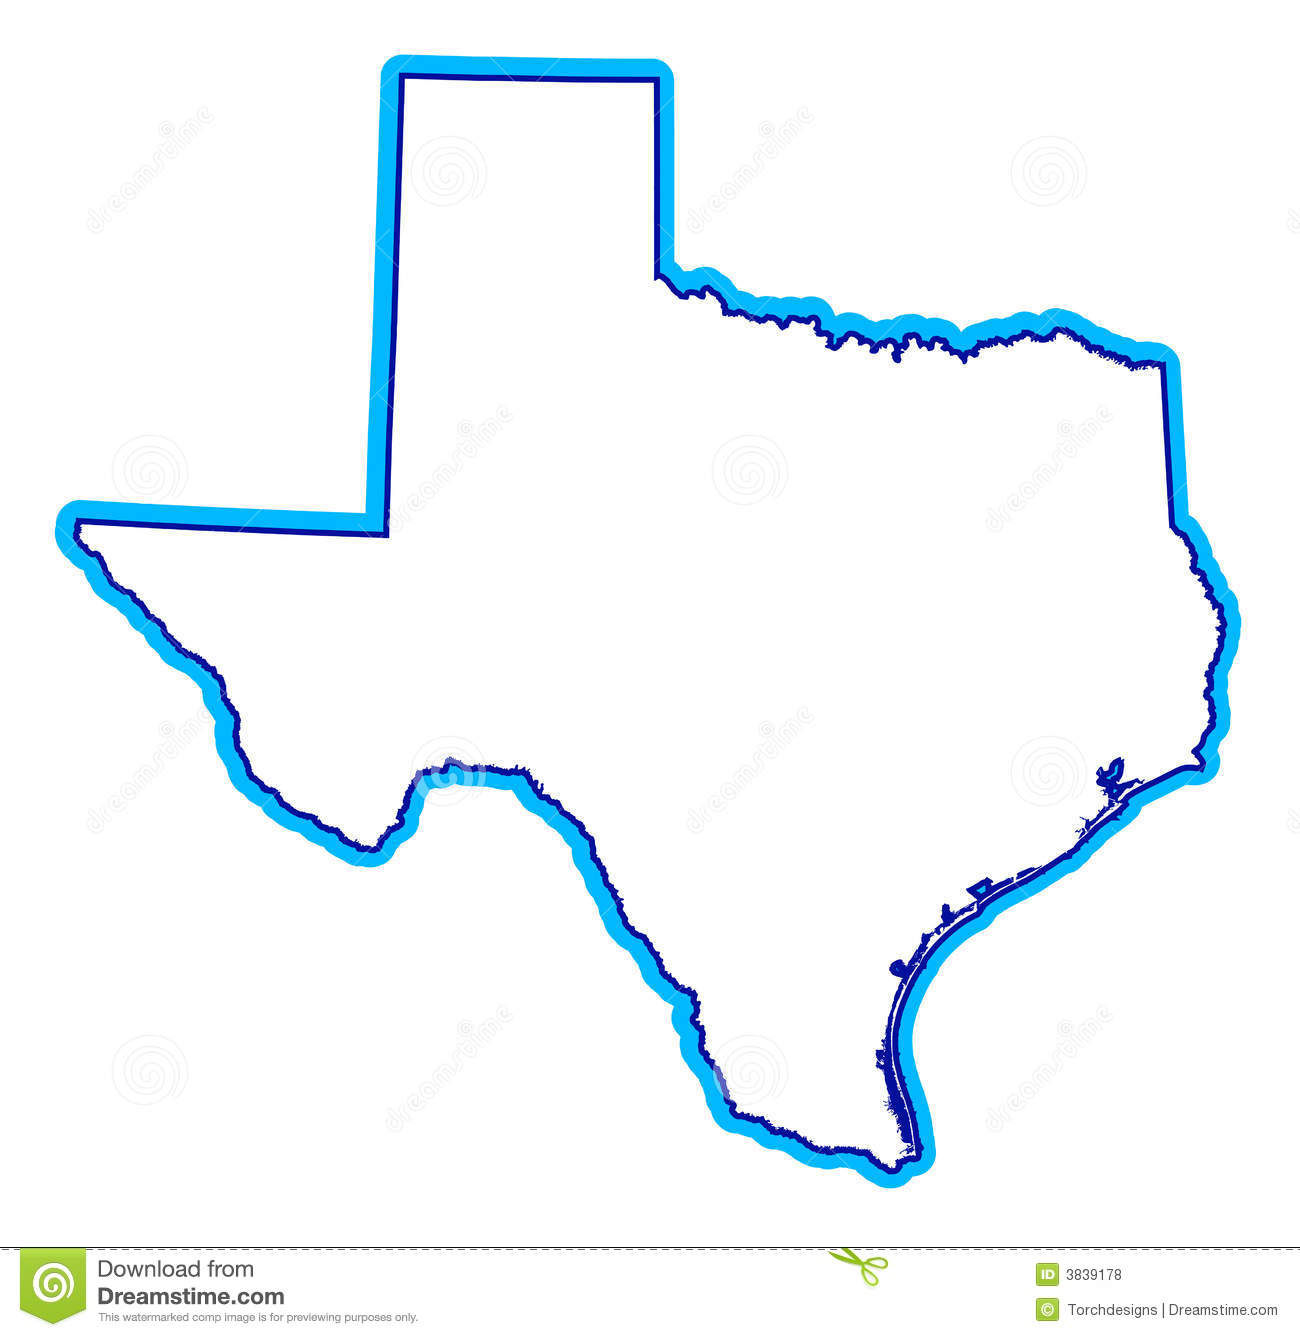 drawing of state of texas stock vector illustration of artistic